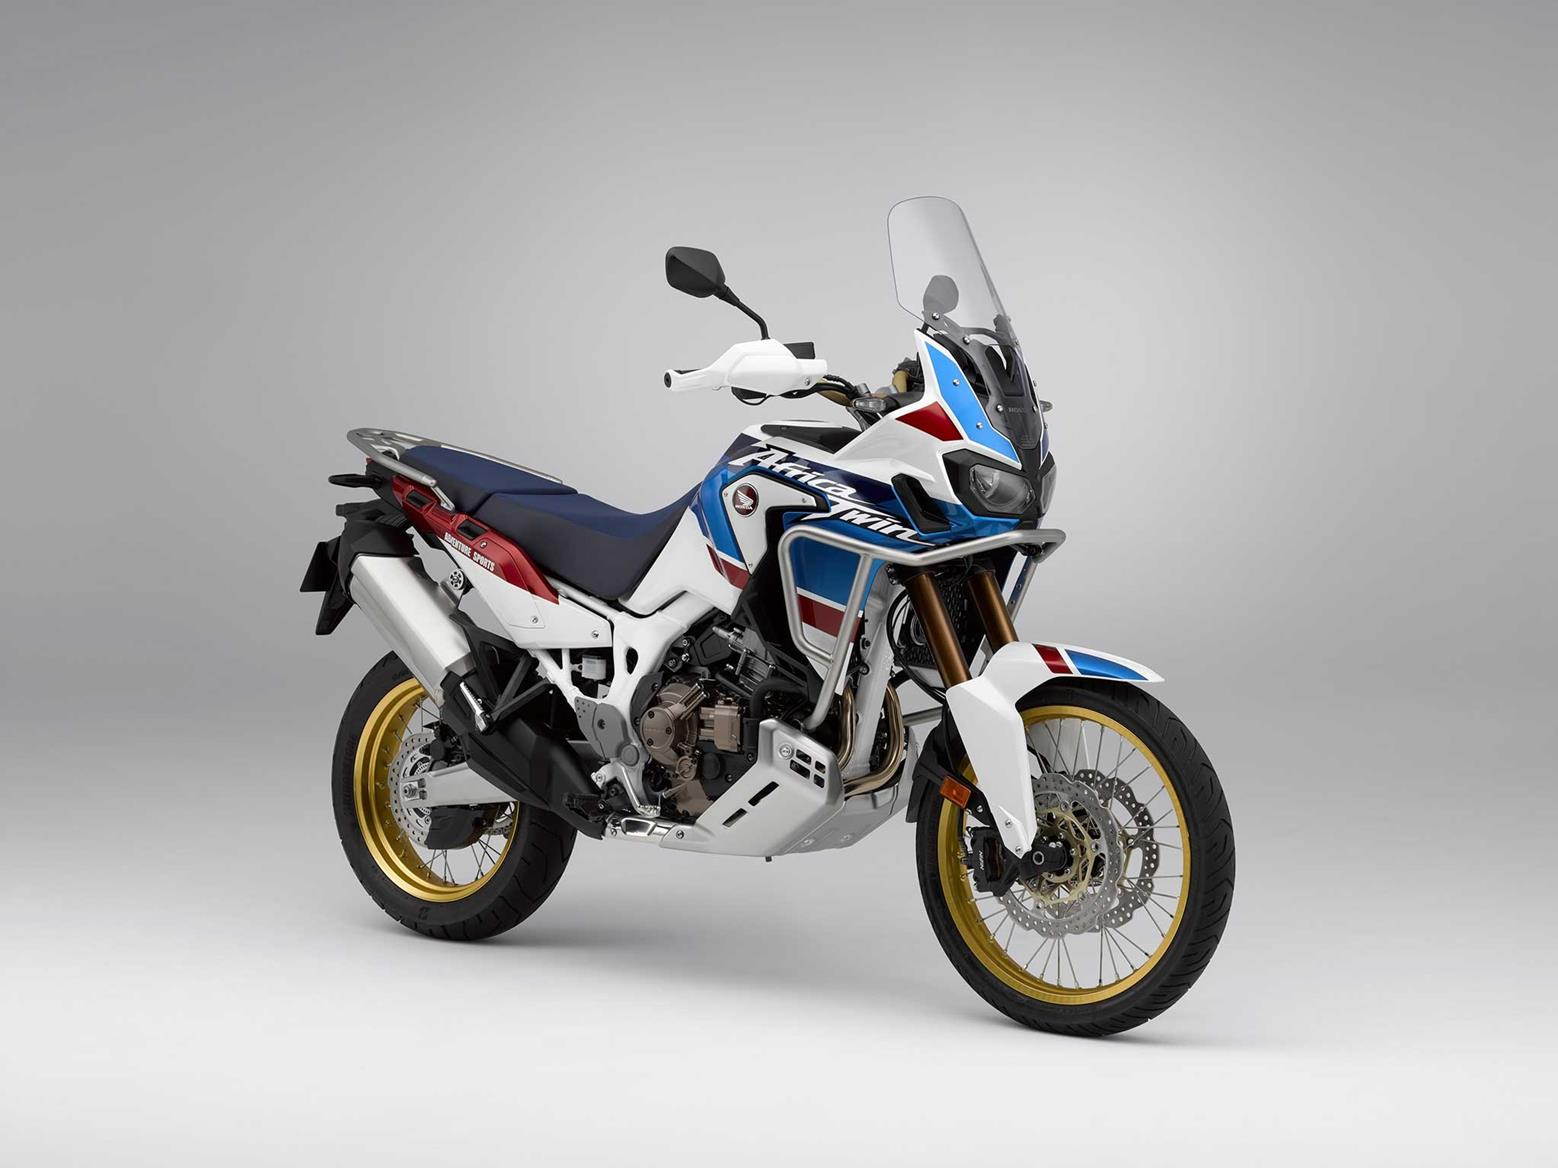 Honda's Africa Twin Adventure Sports has proved a strong seller